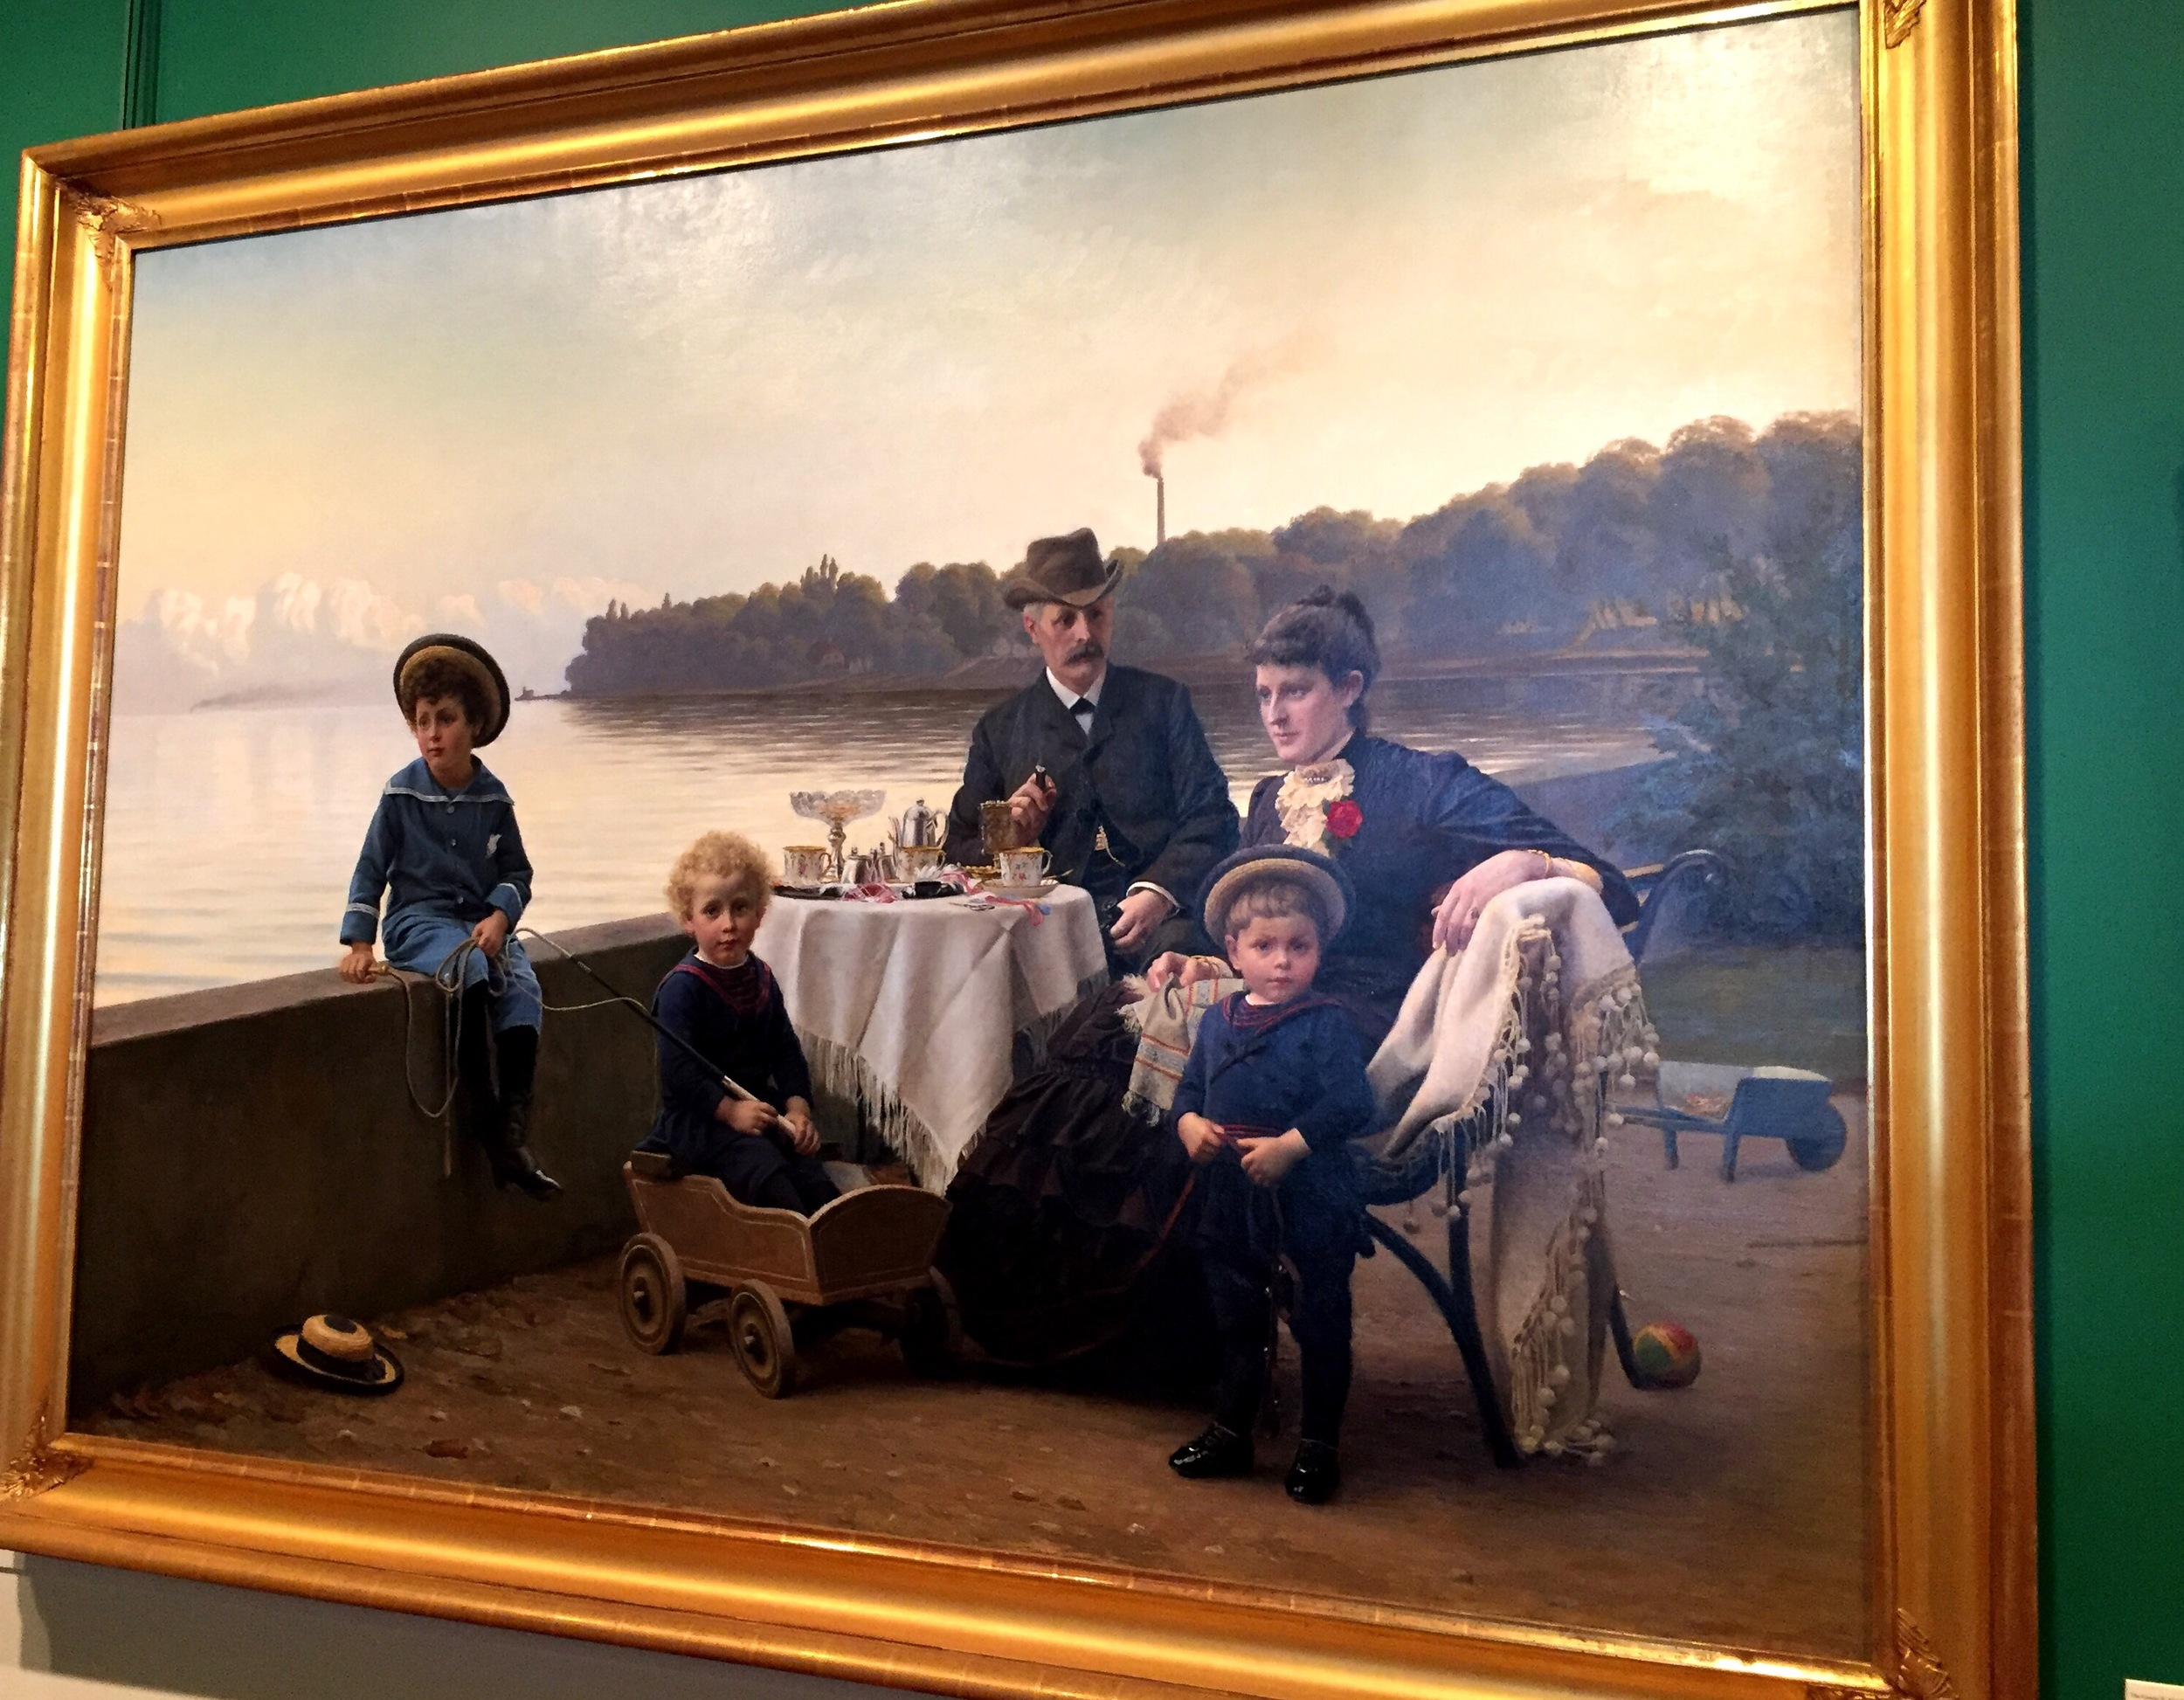 The George R. Rich Family Having Afternoon Coffee at the Villa Quisisana Overlooking Oresund, Skodsborg, Strandvej  (Denmark), 1885 by Wenzel Ulrik Tornoe, Danish, 1844-1907